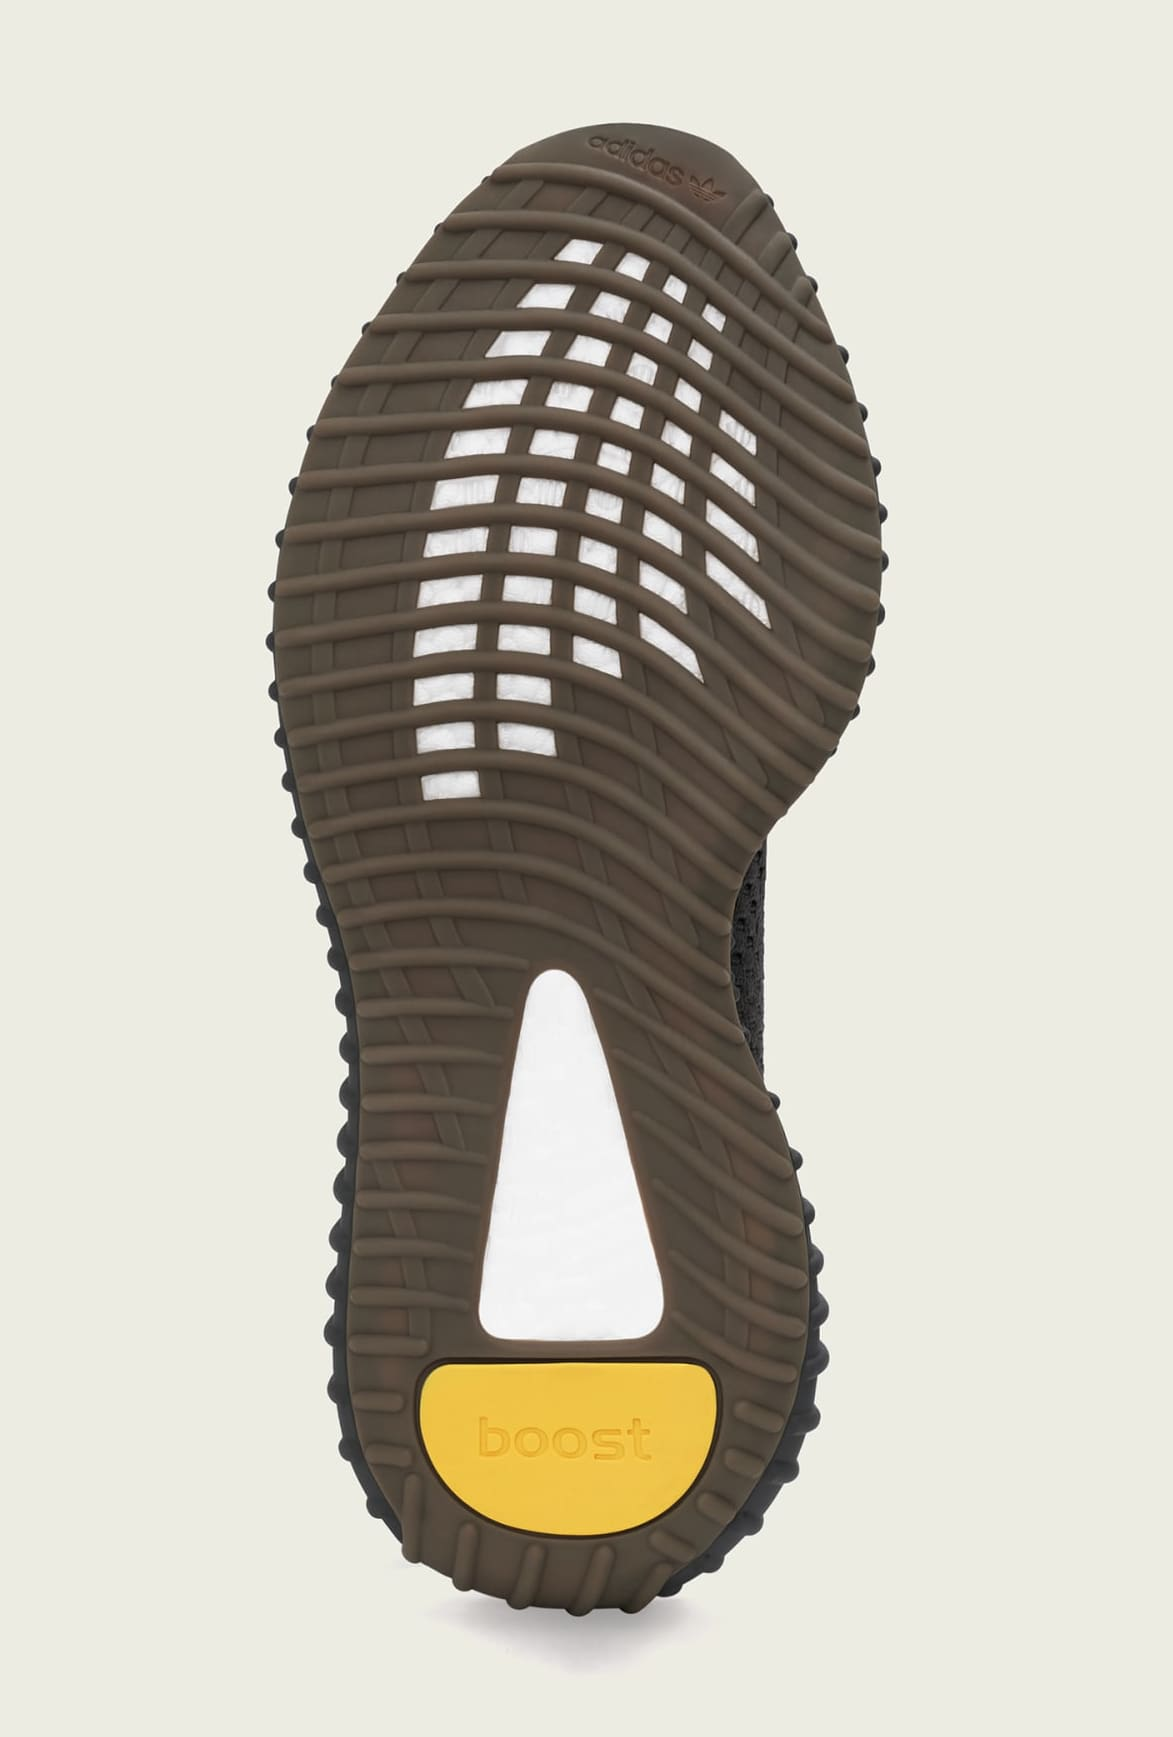 Adidas Yeezy Boost 350 V2 'Cinder' FY2903 Outsole